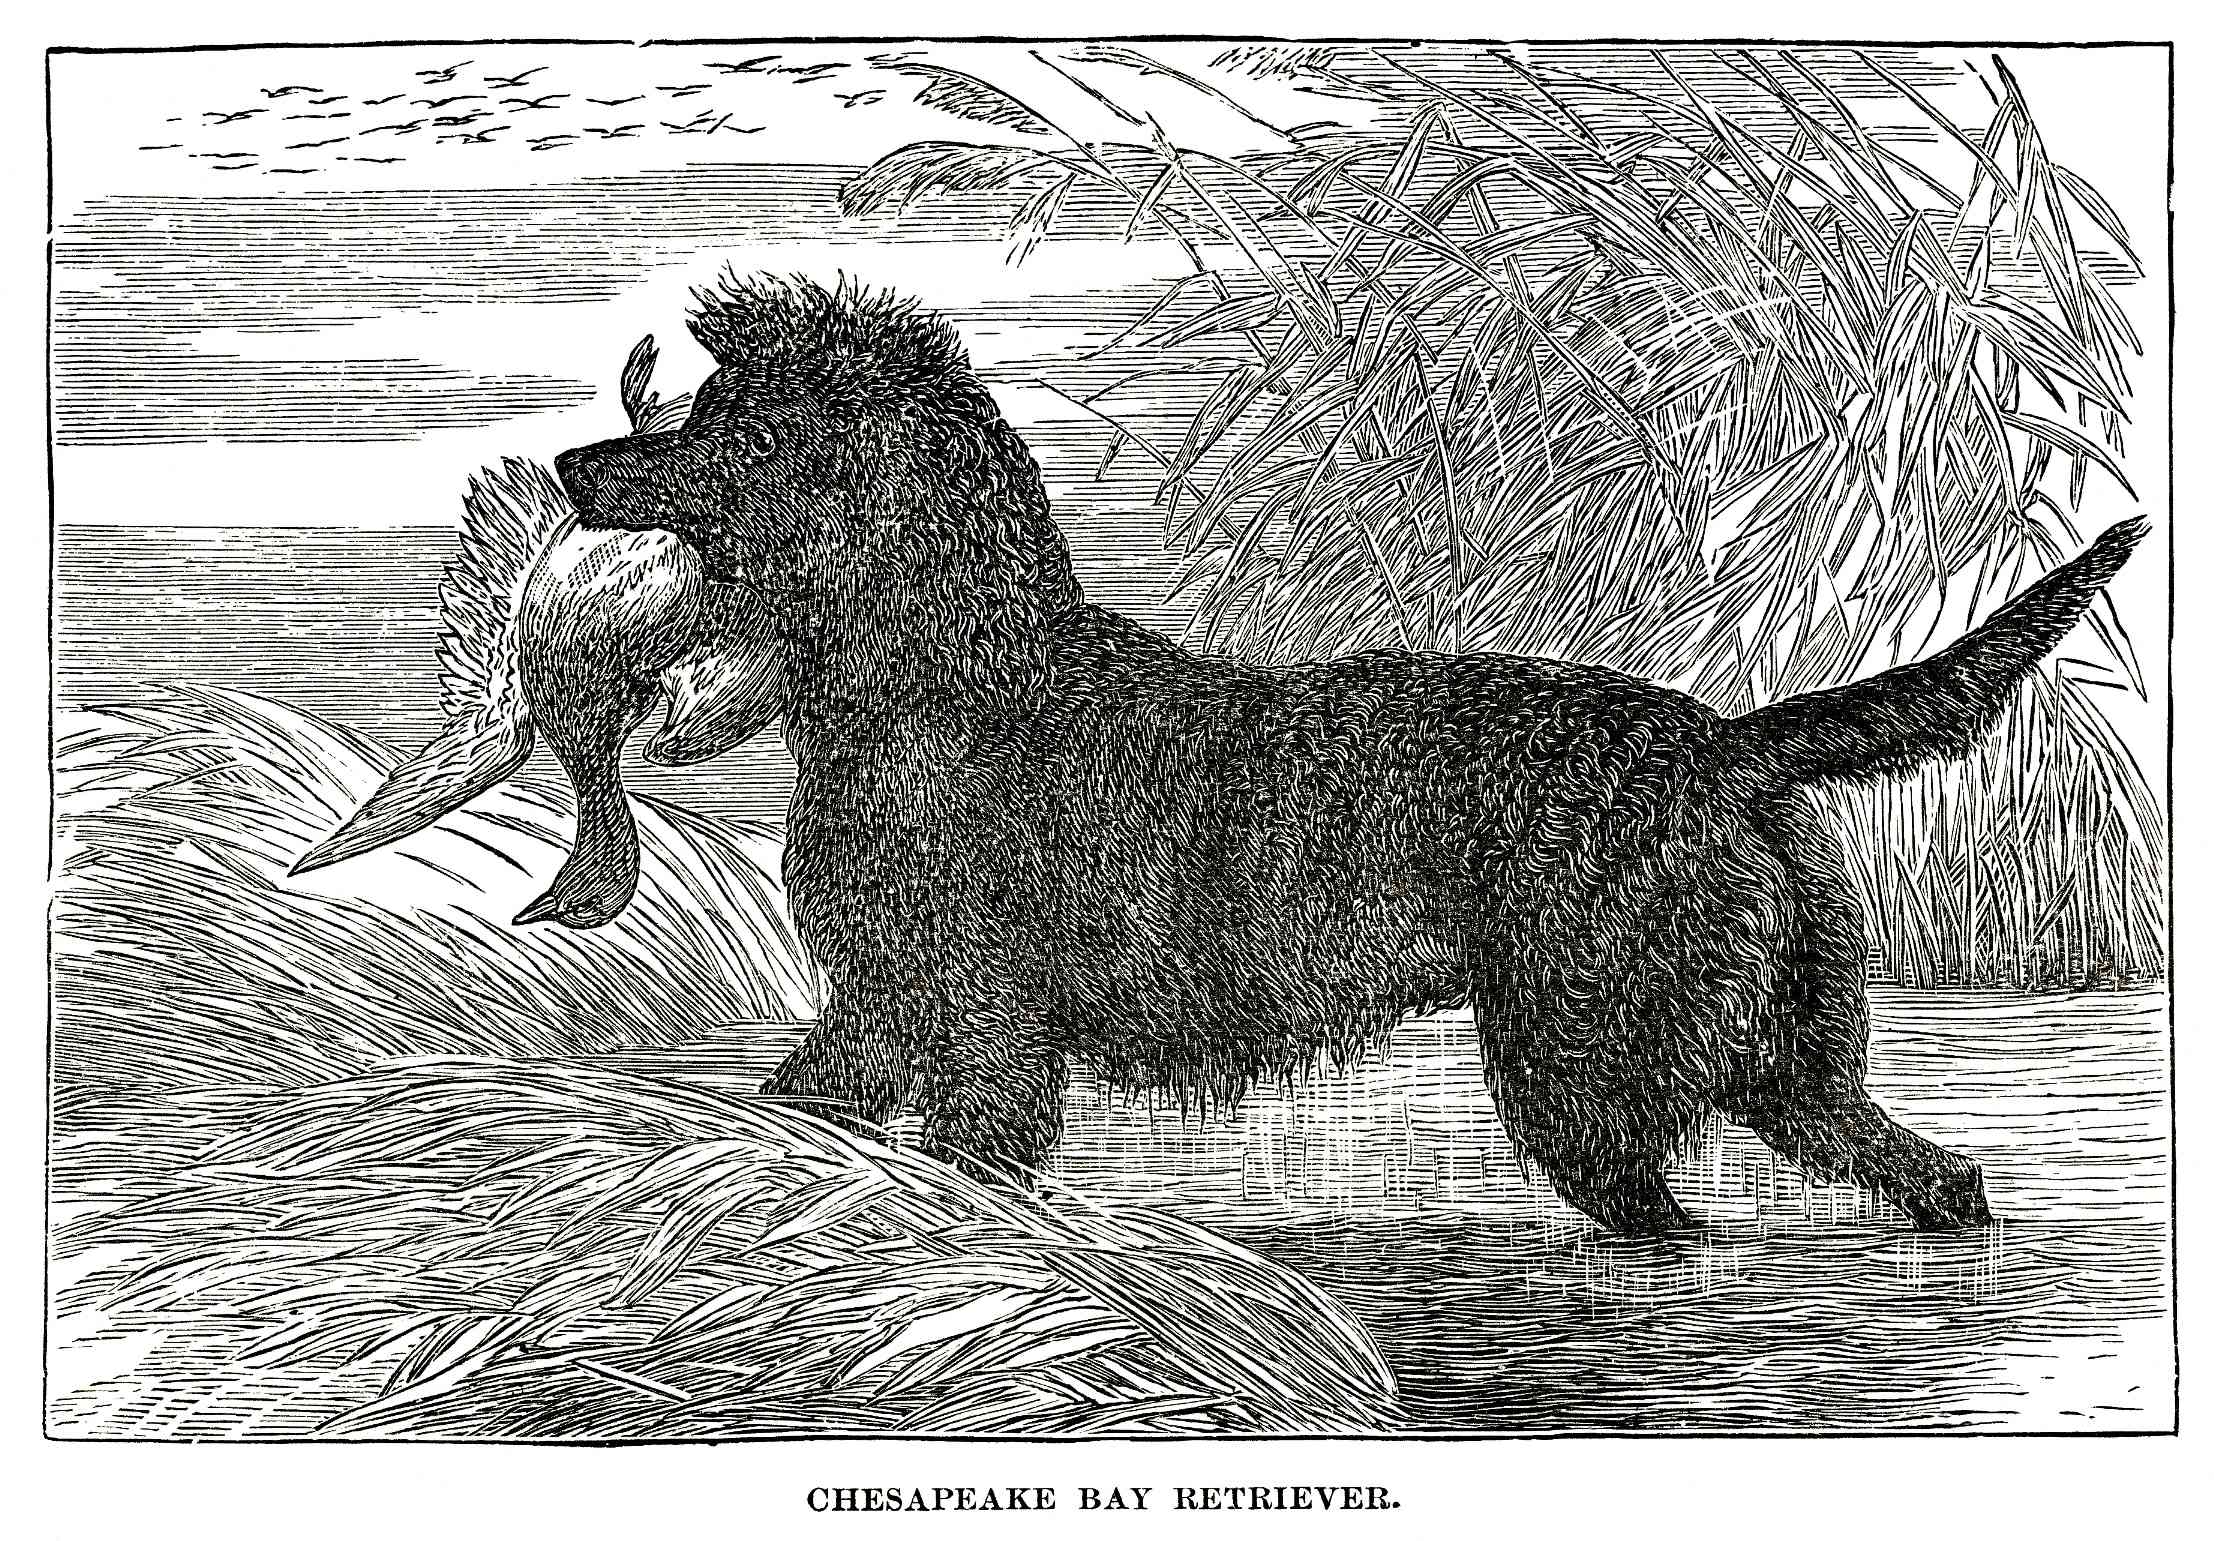 An early illustration of a Chesapeake Bay Retriever